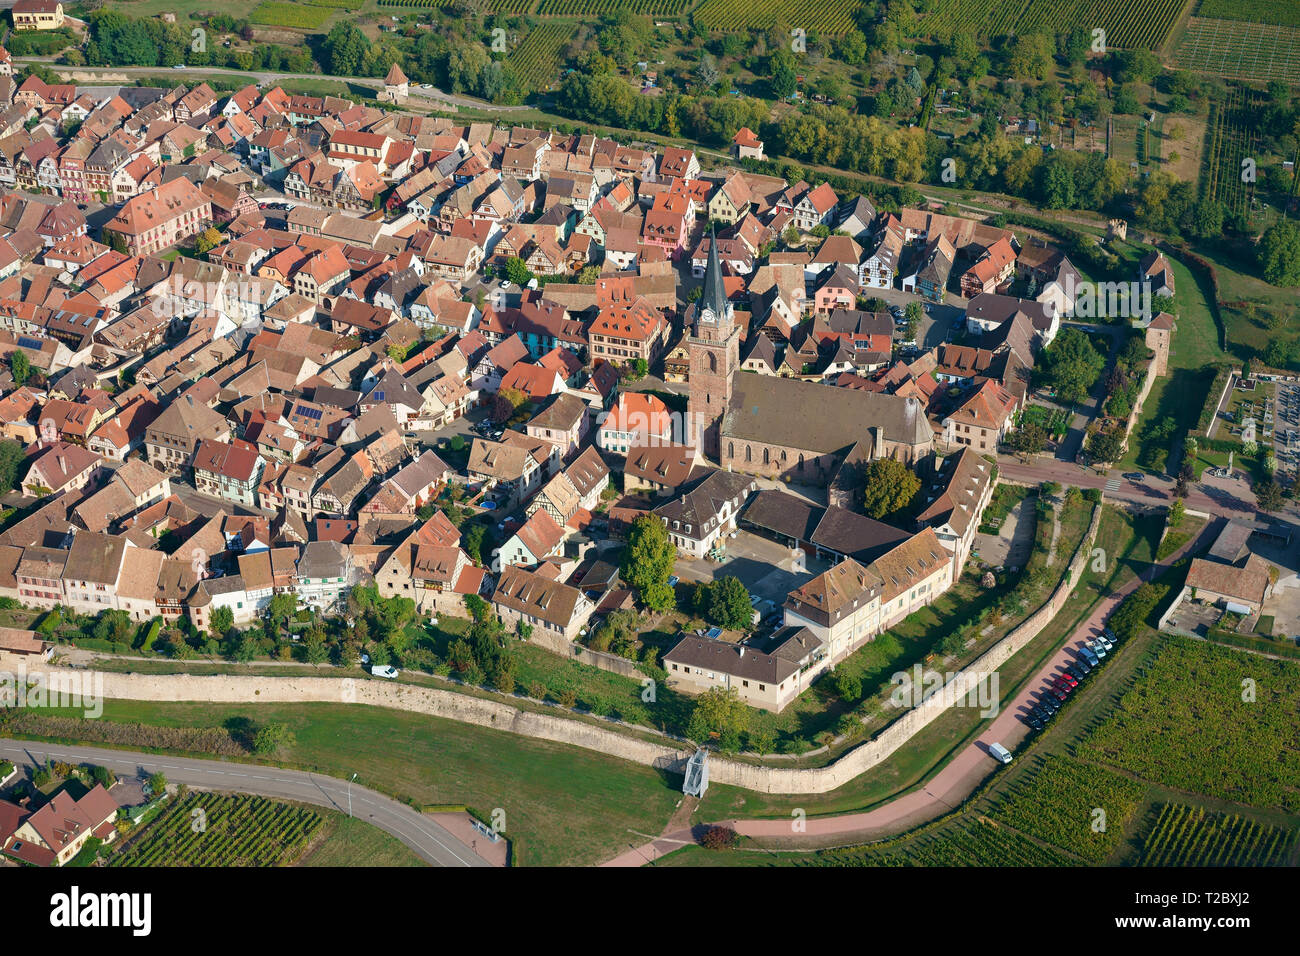 MEDIEVAL CITY WITH ITS SURROUNDING RAMPART (aerial view). Bergheim, Haut-Rhin, Alsace, Grand Est, France. - Stock Image